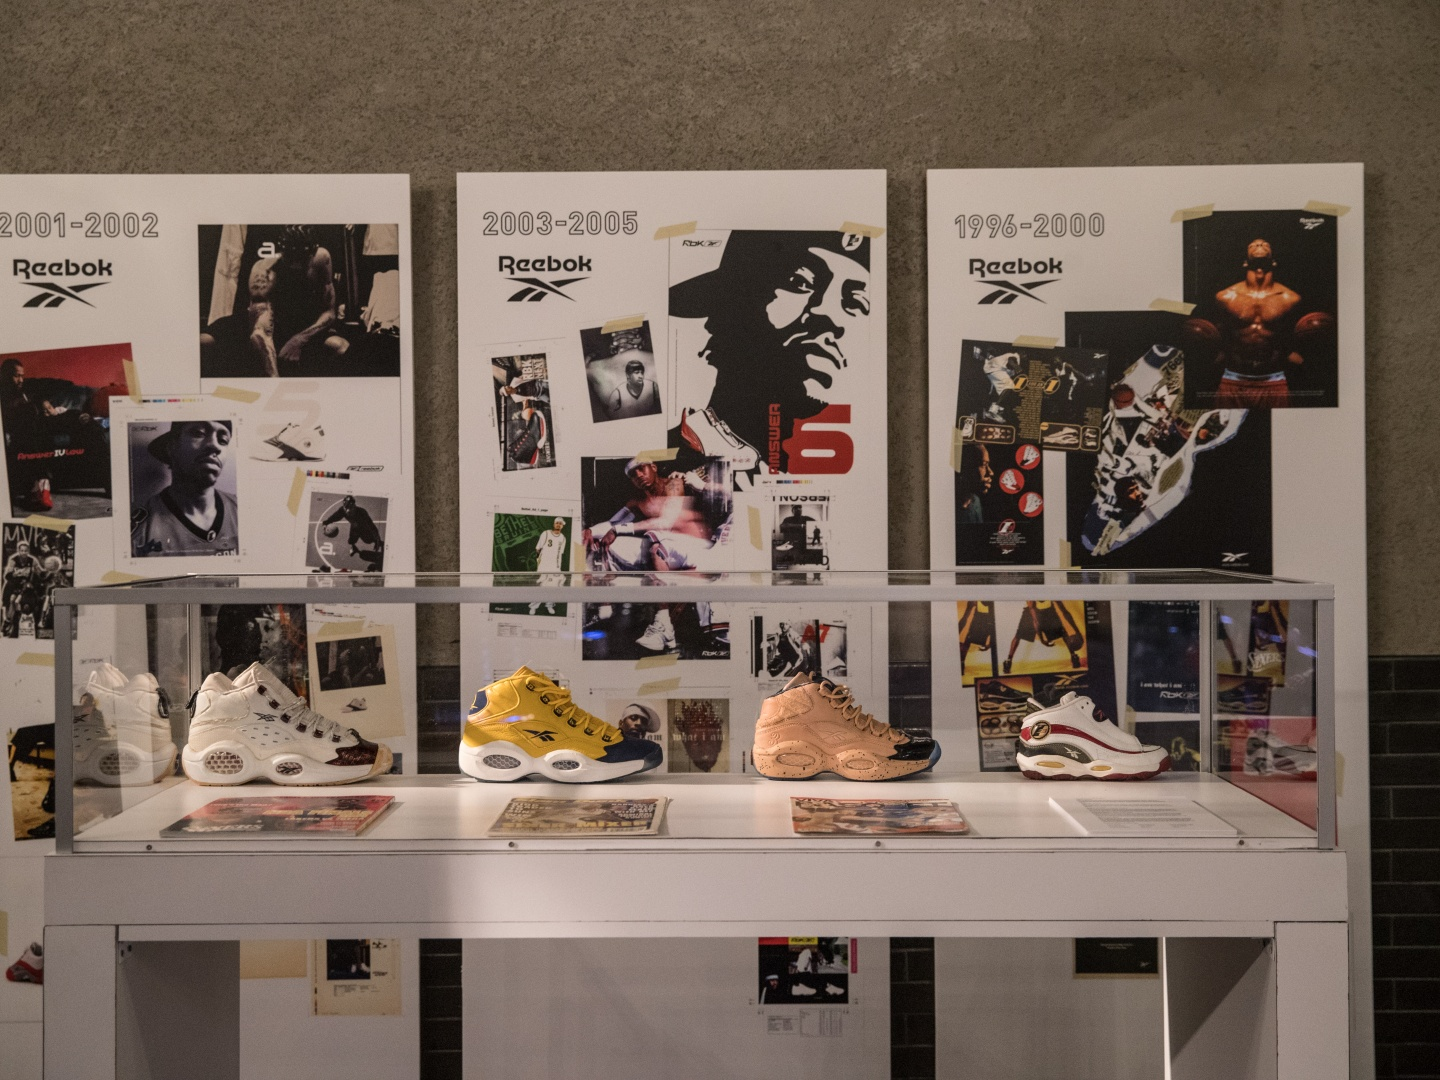 76ers Crossover - Art Exhibition presented by Reebok Thumbnail